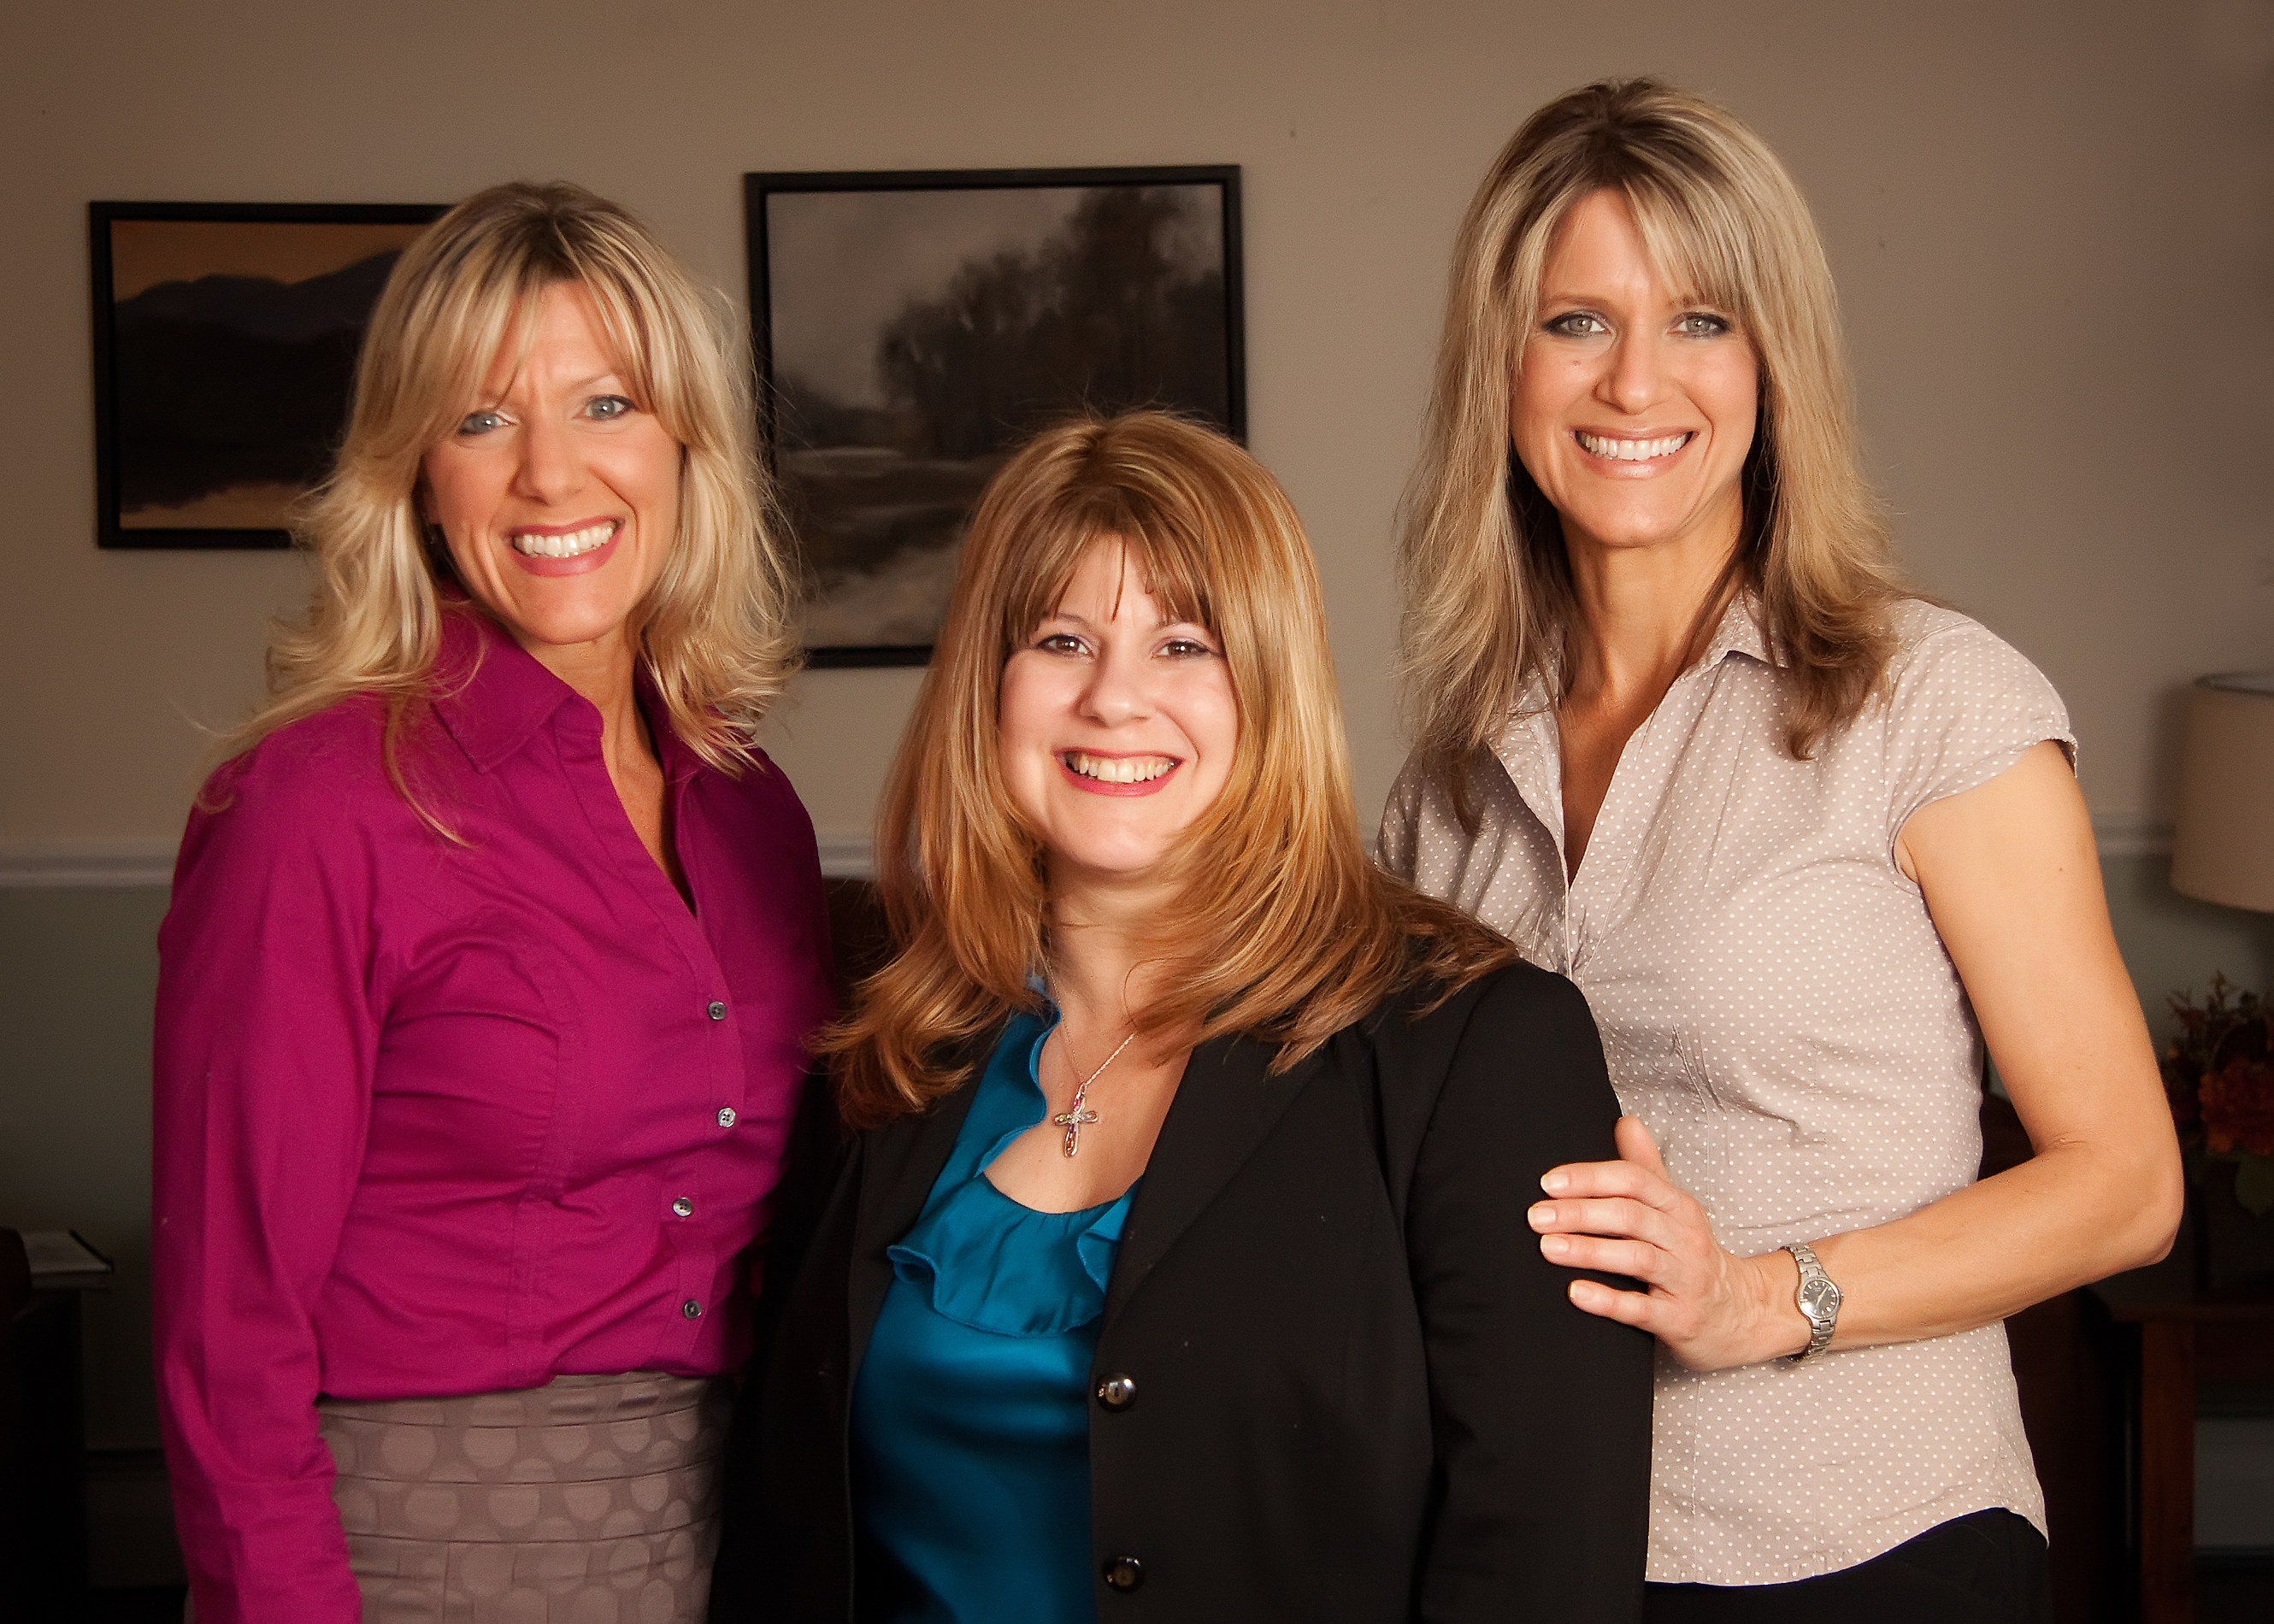 The Mondello Realty Family Team: Margaret, Catherine and Therese Mondello (left to right)